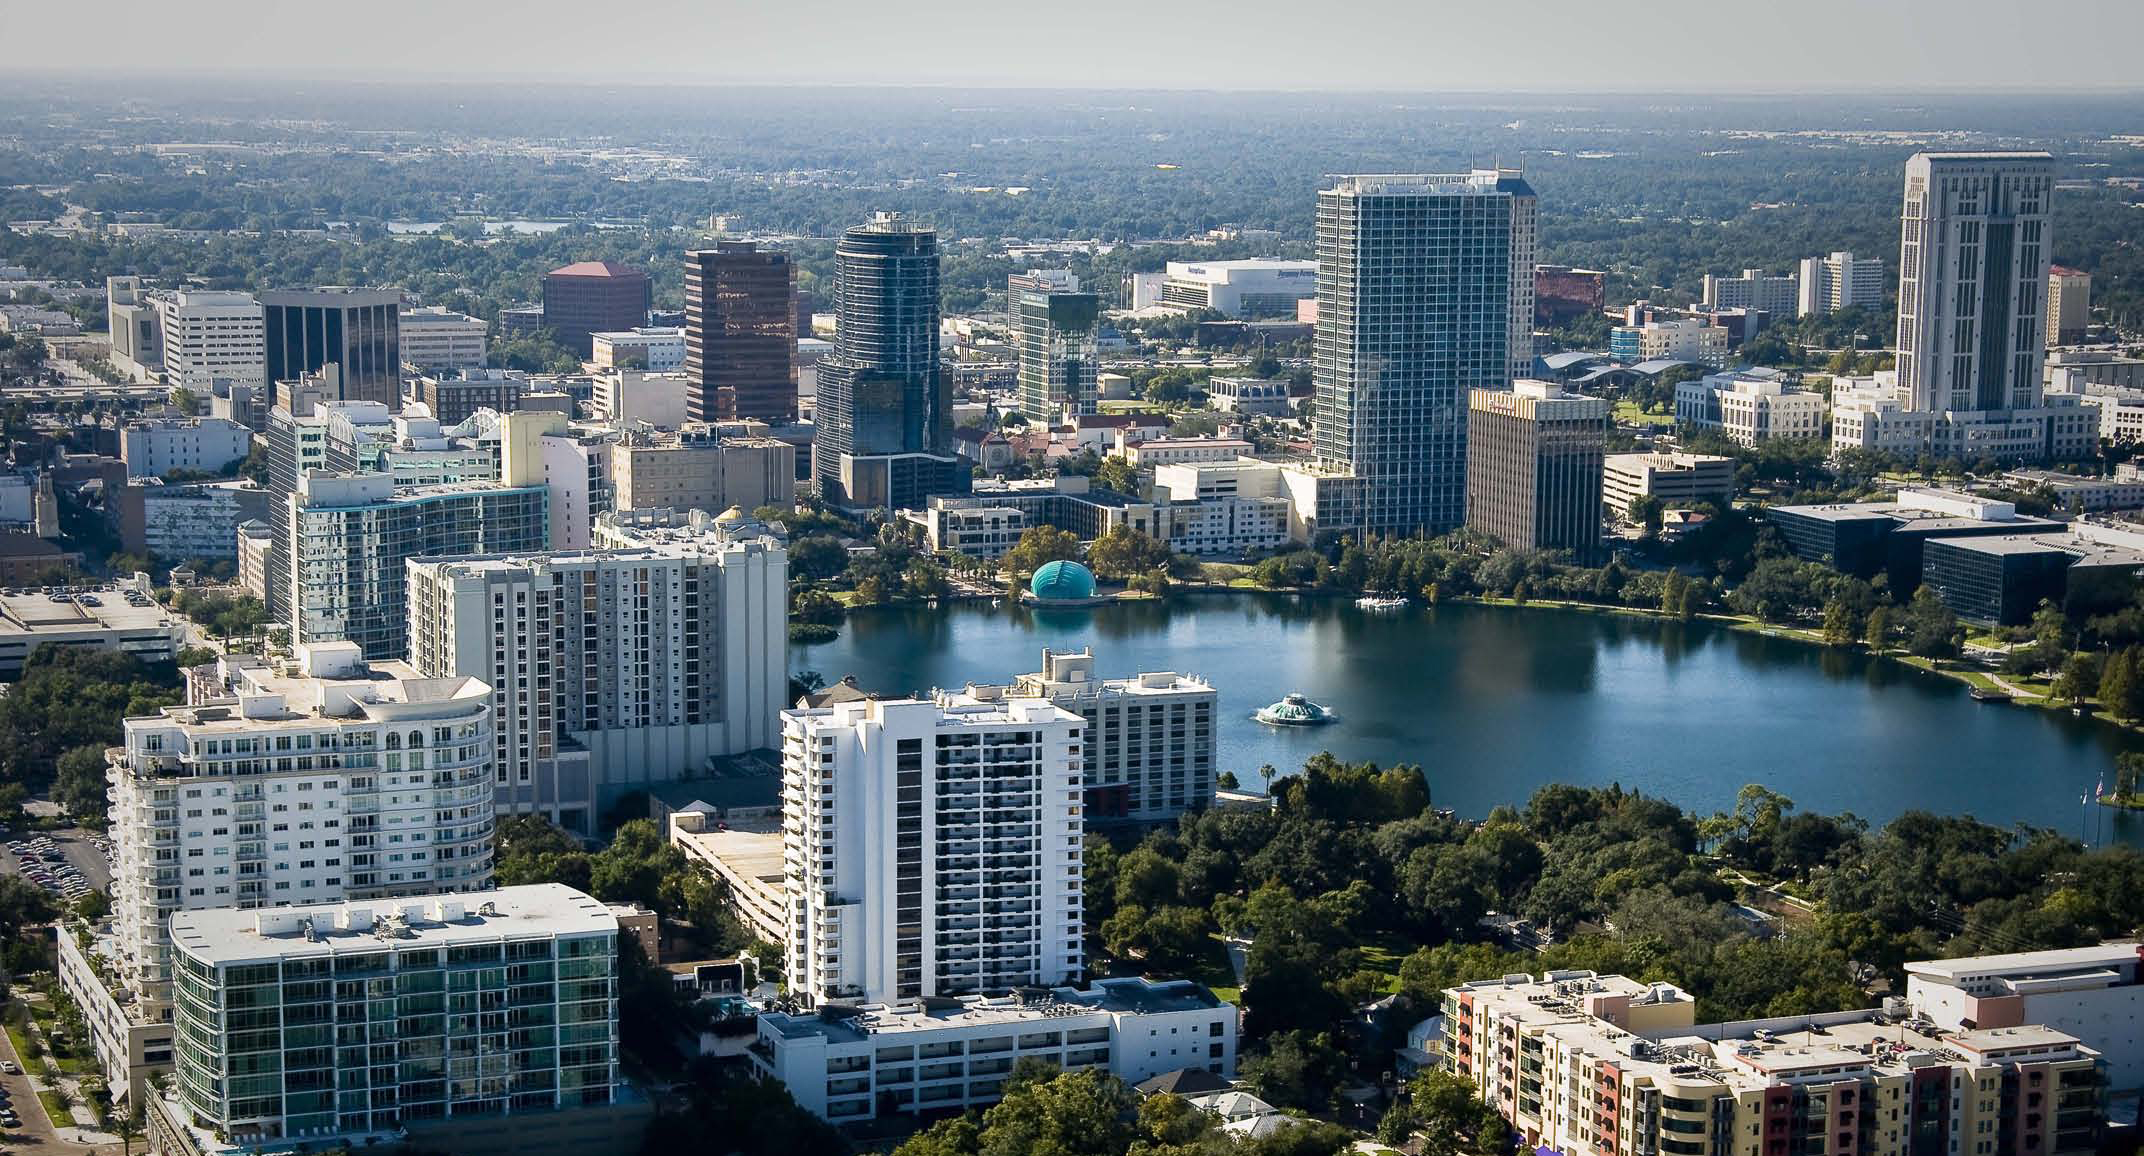 Selling/Acquiring Distressed Real Estate In Florida: a White Paper on the Advantages and Disadvantages of Six Alternatives, Including Contract and Due